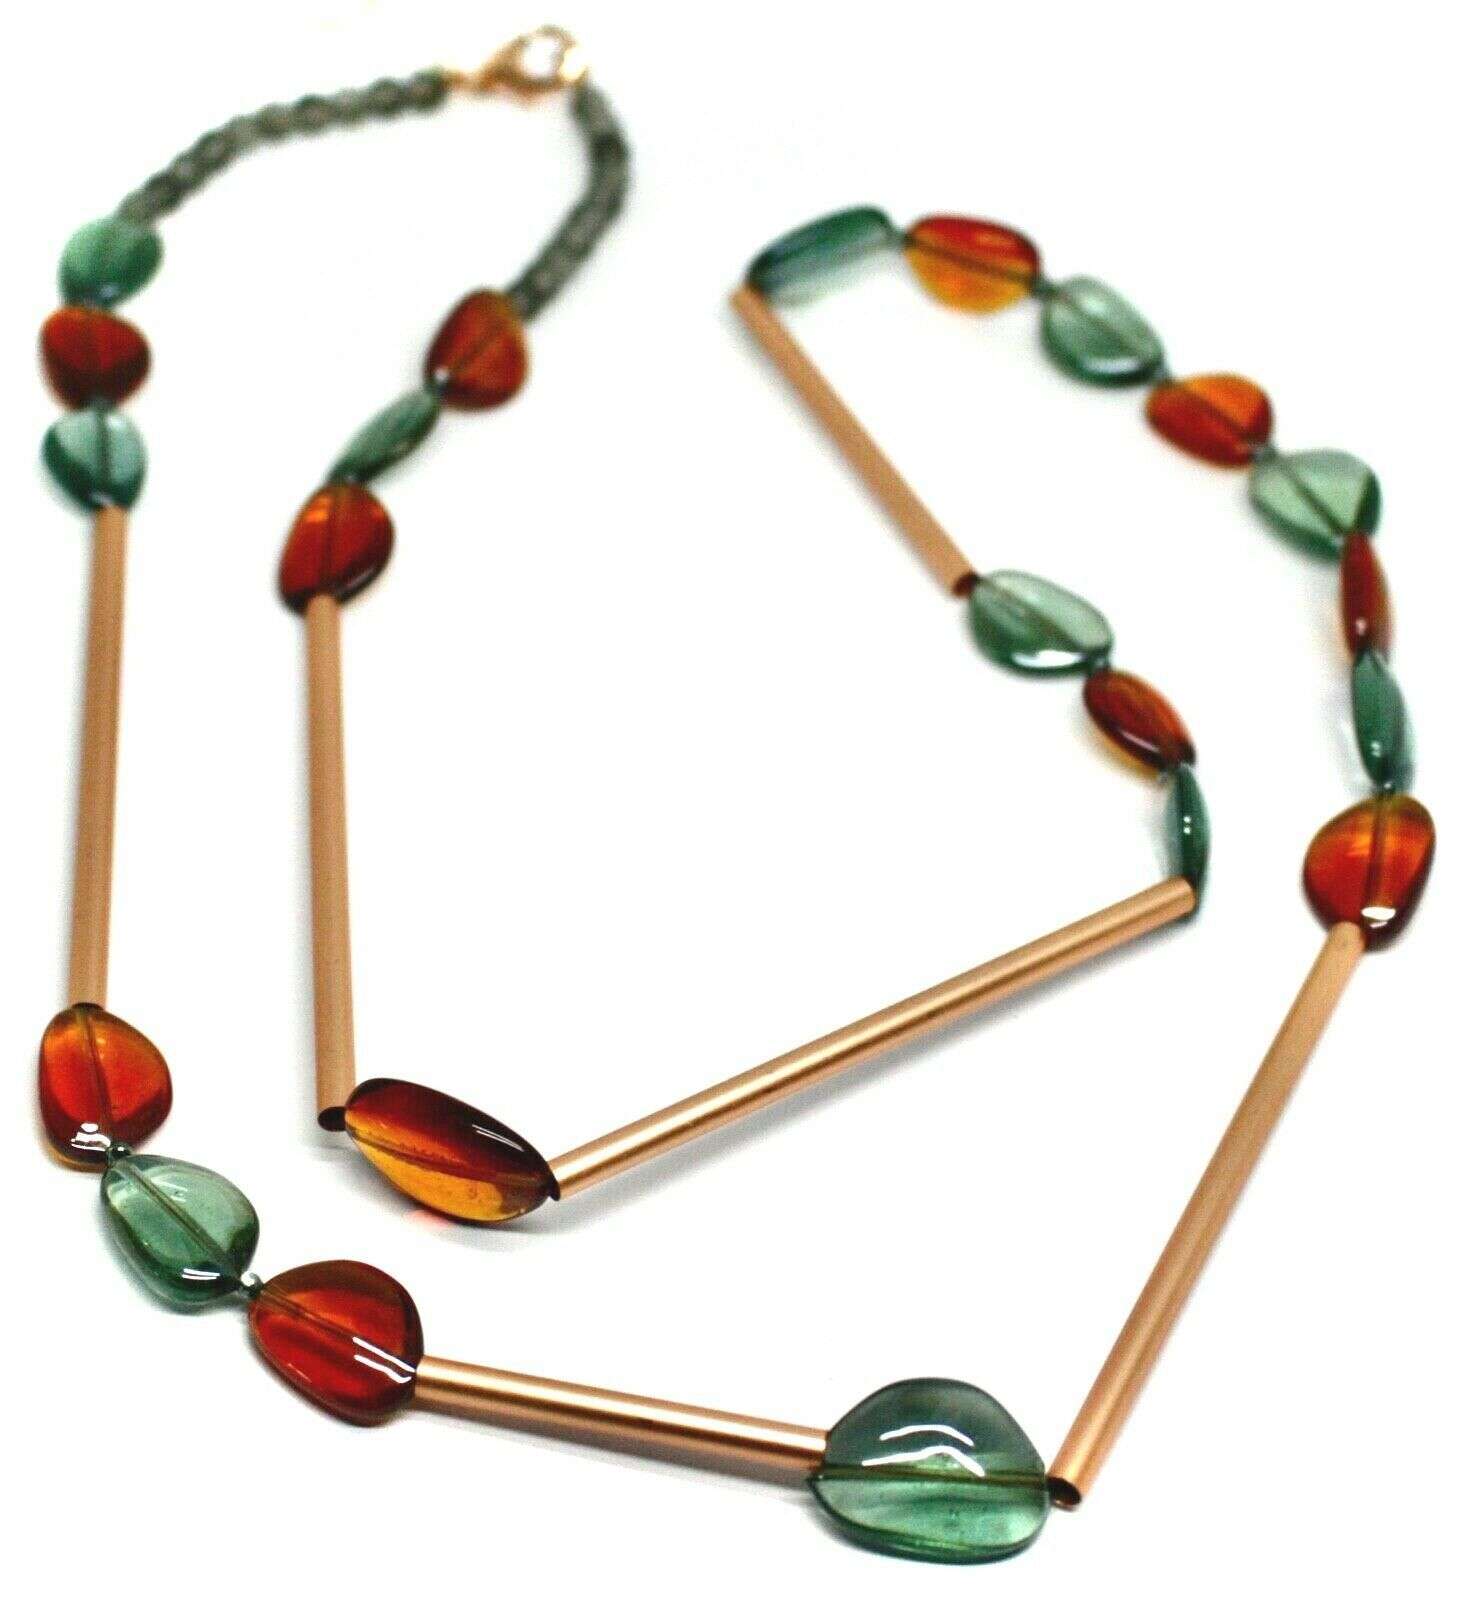 "ROSE NECKLACE AMBER GREEN ROUNDED DROPS OF MURANO GLASS TUBE ALTERNATE 40"" LONG"